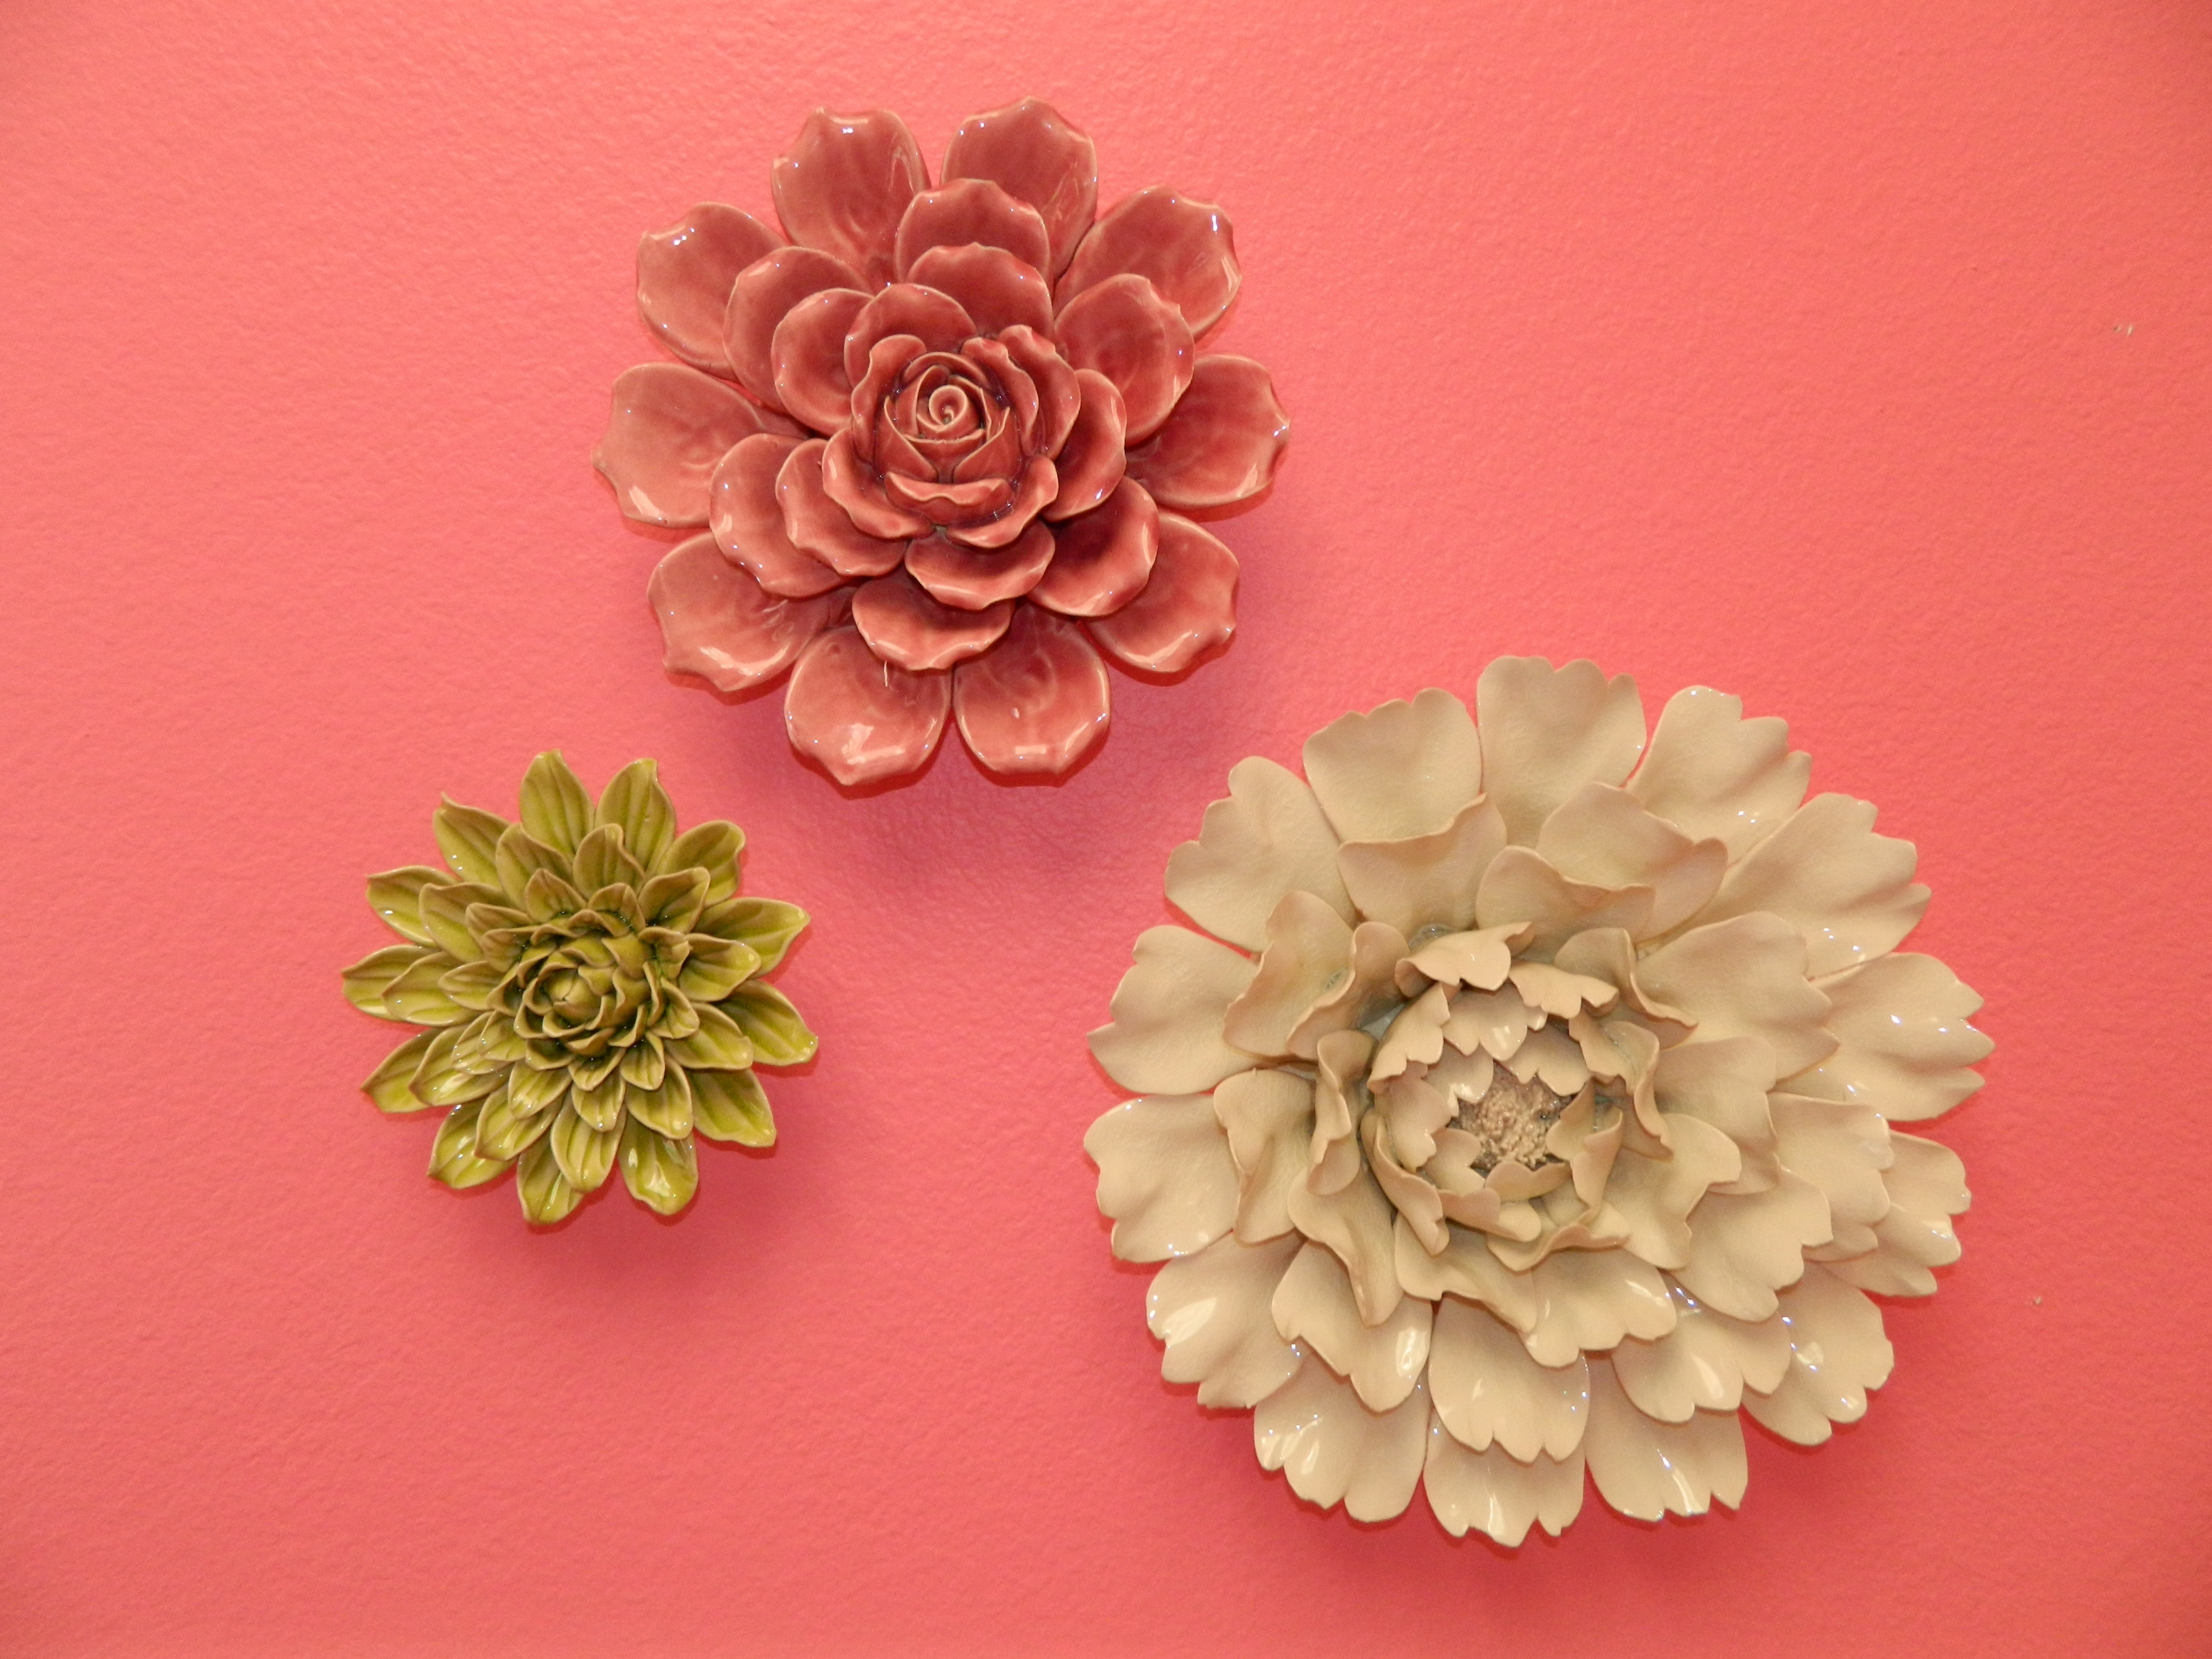 Ceramic Wall Flowers Brighten Up This Children's Room! (View 4 of 15)